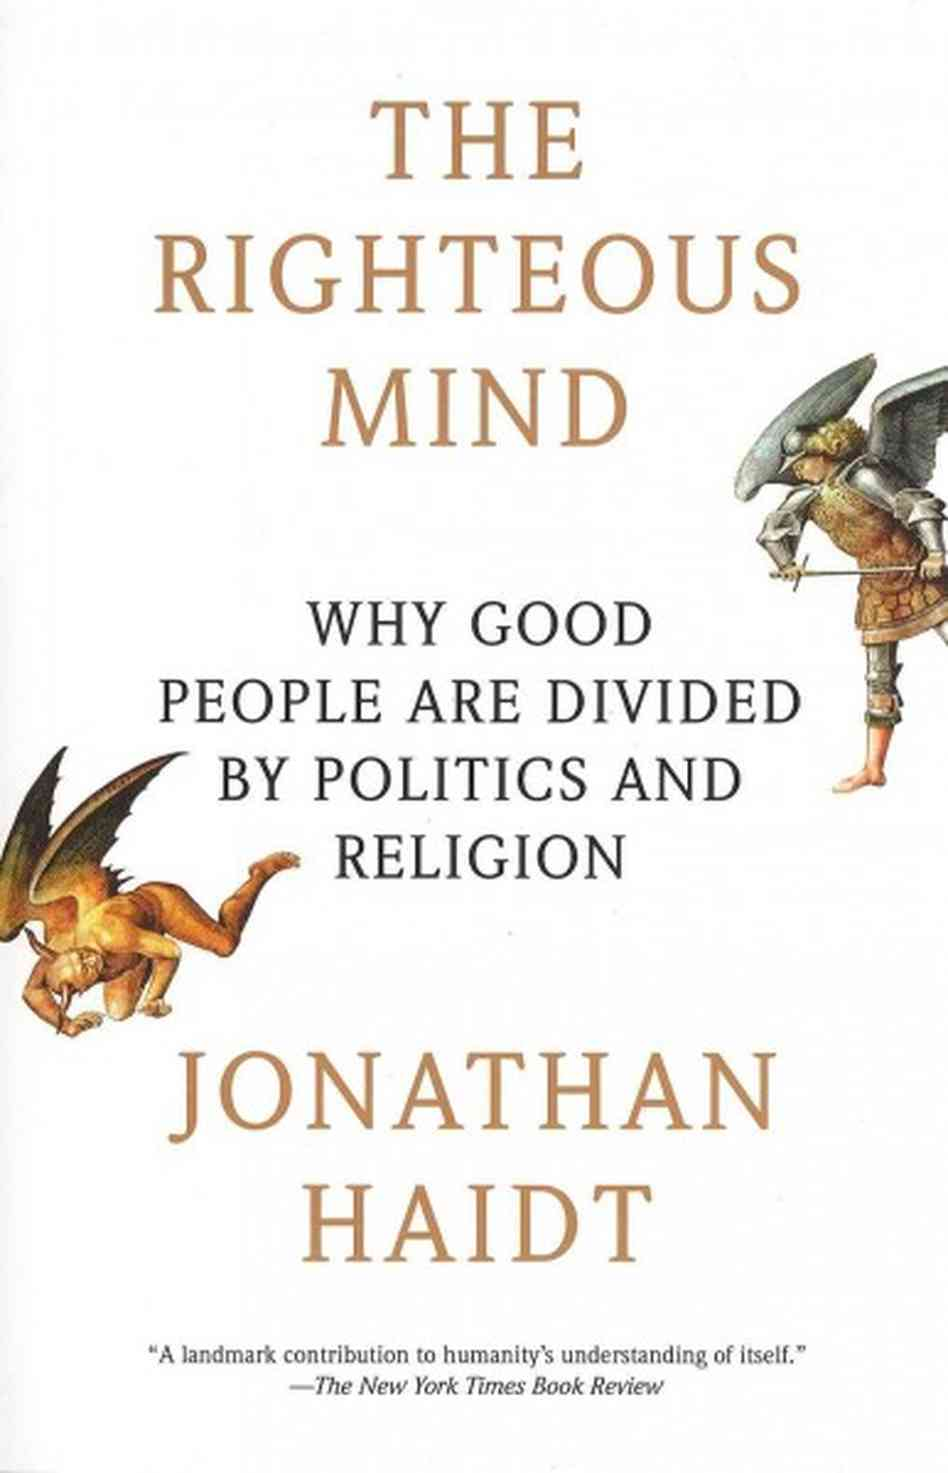 The Righteous Mind- Why Good People Are Divided by Politics and Religion